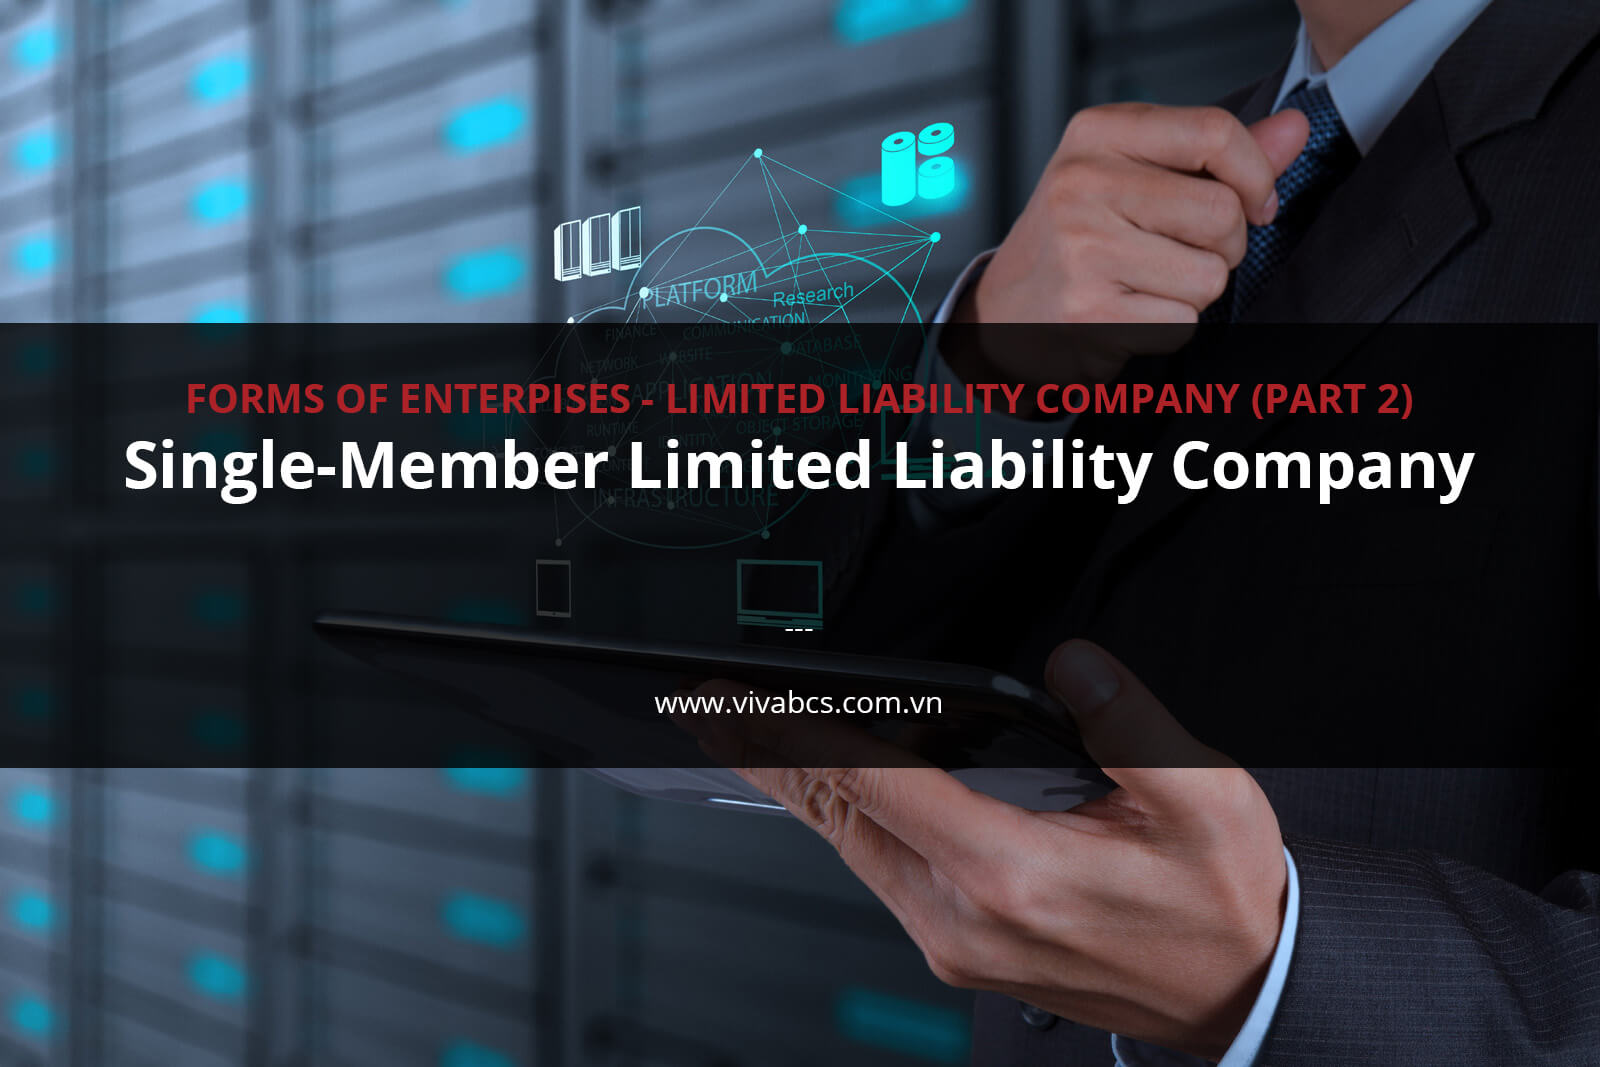 Single-Member Limited Liability Company